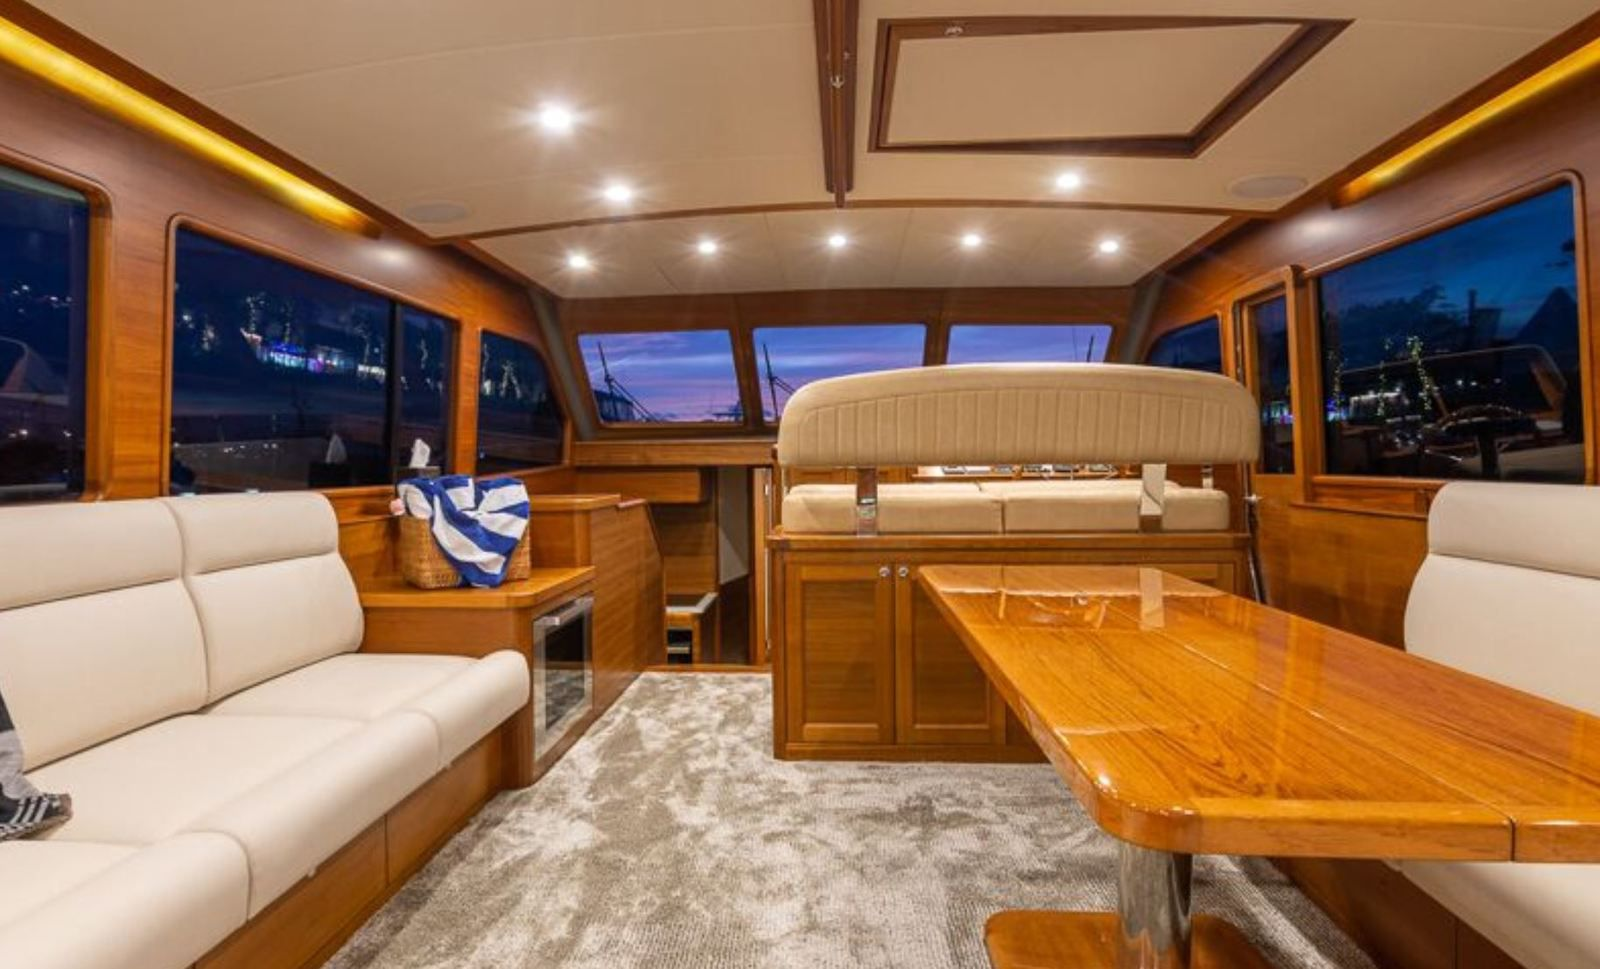 Grand Banks 54 Auf Der 2020 Palm Beach International Boat Show Enthüllt Yachting Art Magazine